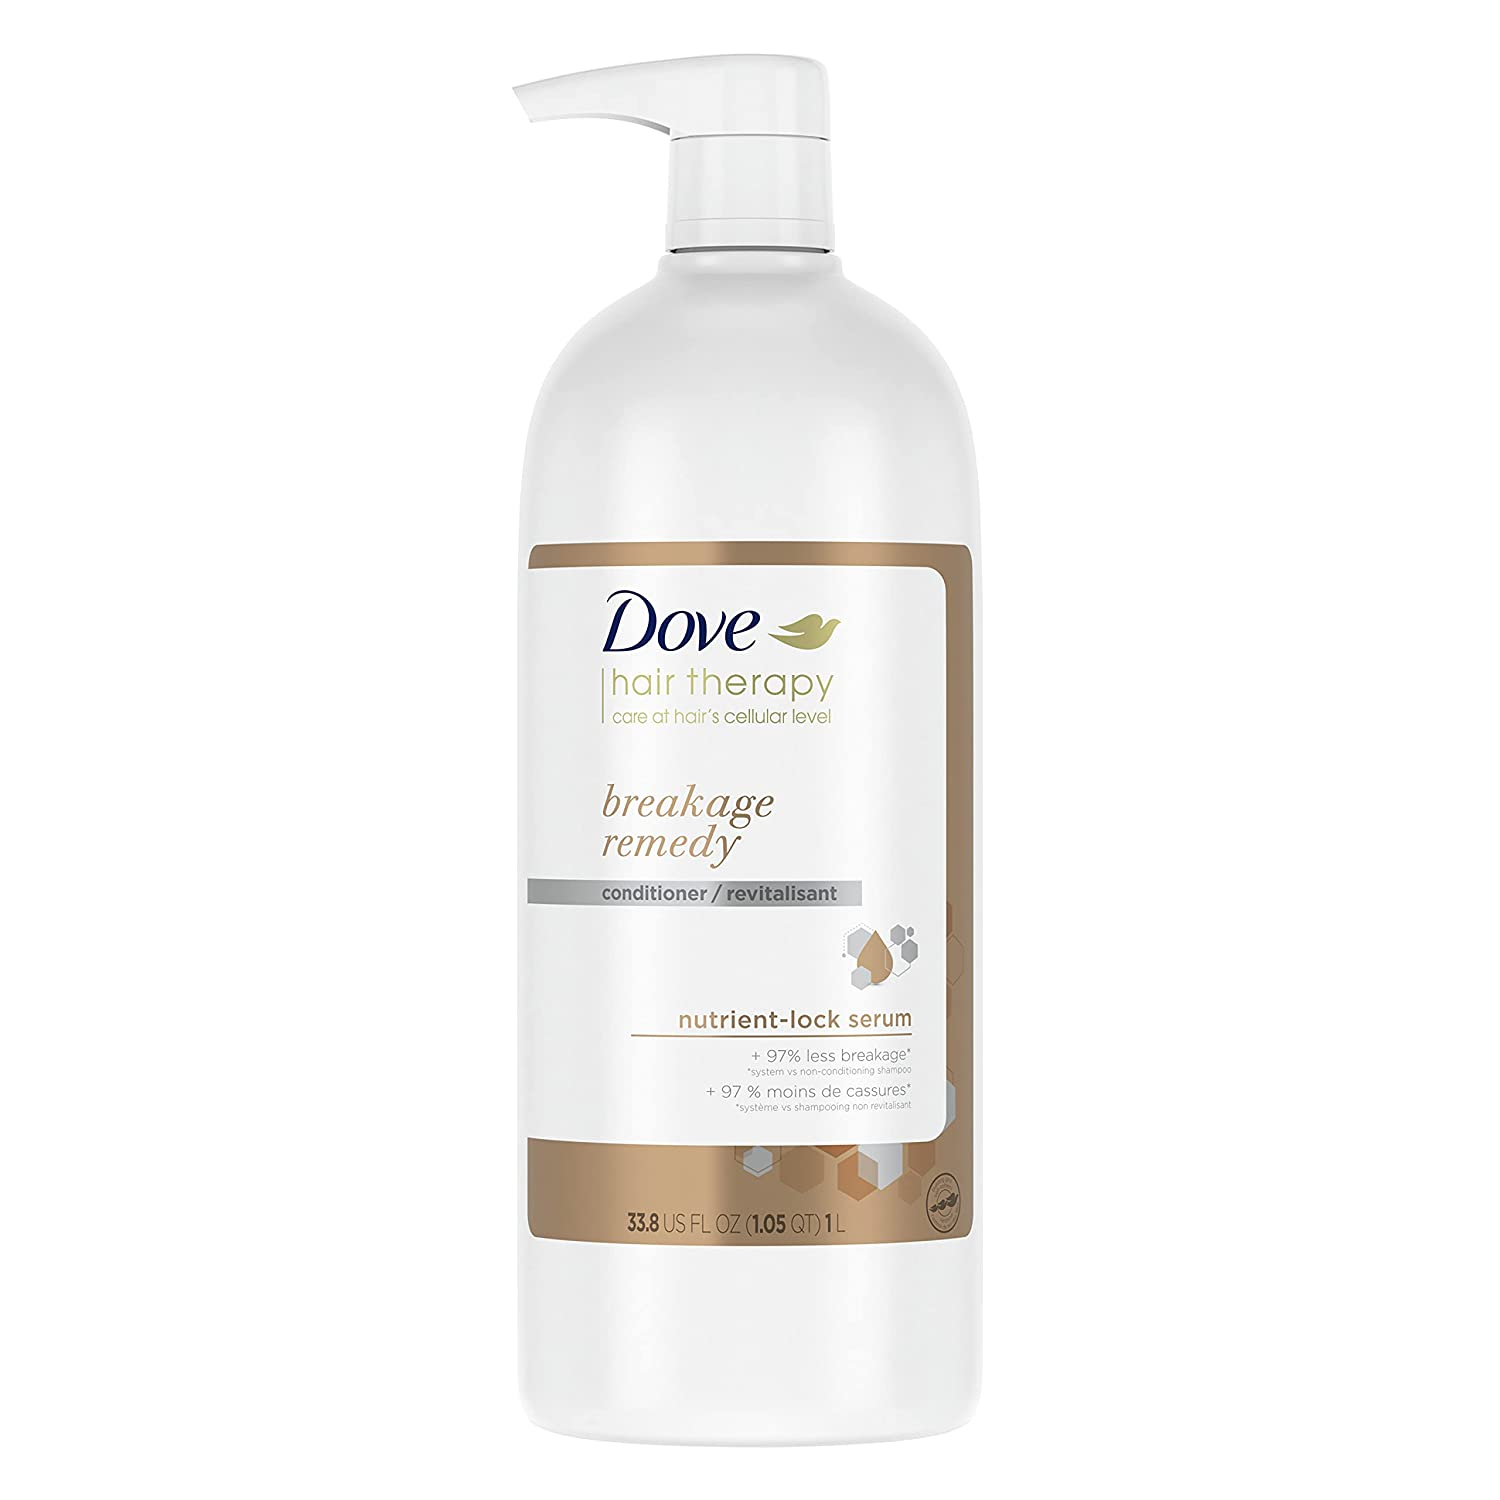 Dove Brand Cheap Sale Venue Hair Therapy Conditioner for Breakage Super intense SALE Remedy H Damaged